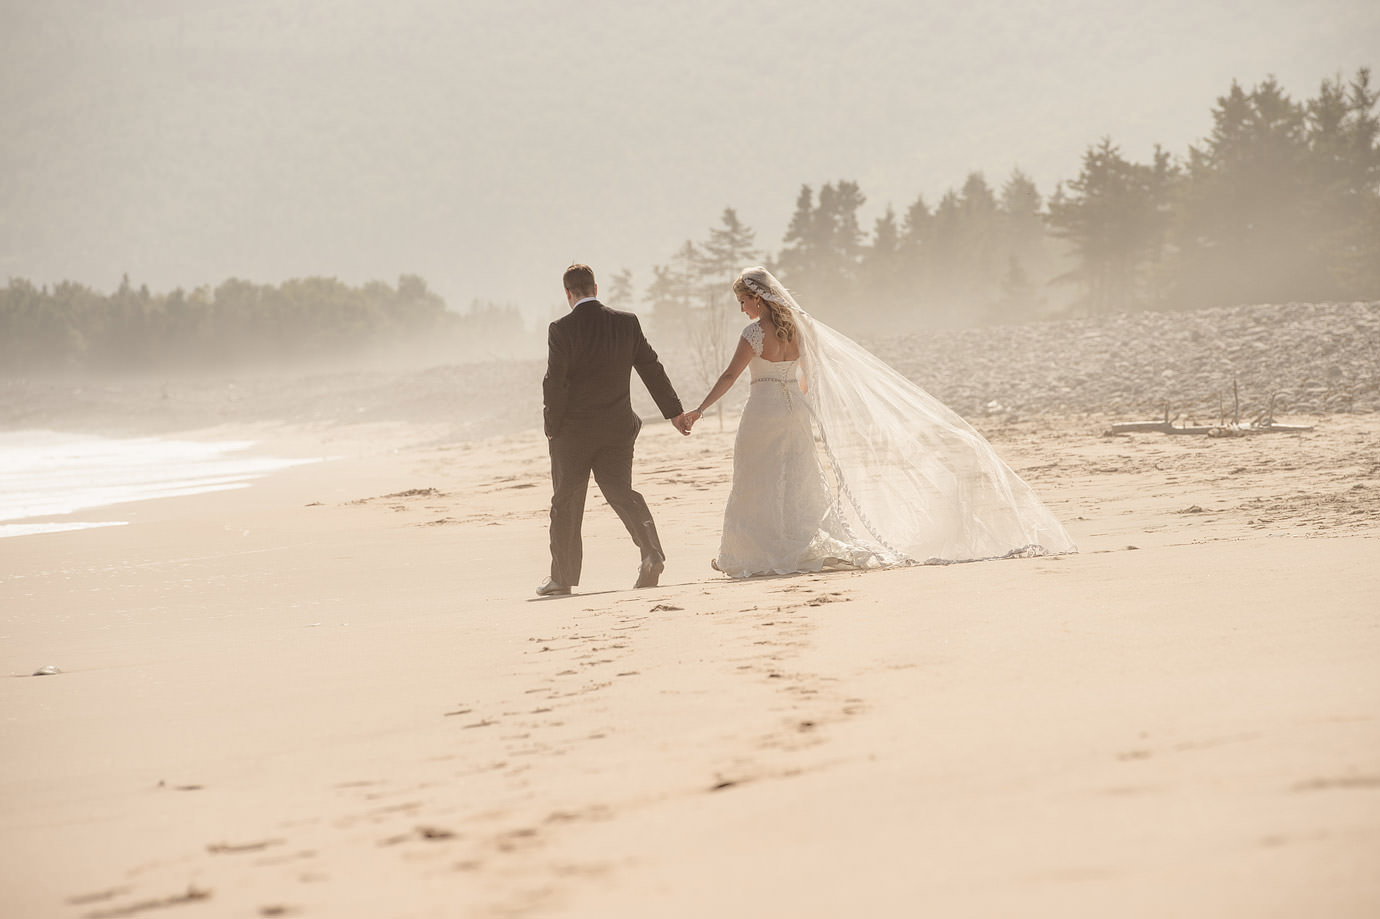 keltic lodge weddings, cape breton, jeff cooke, jenn nauss, highlands, cabot trail weddings